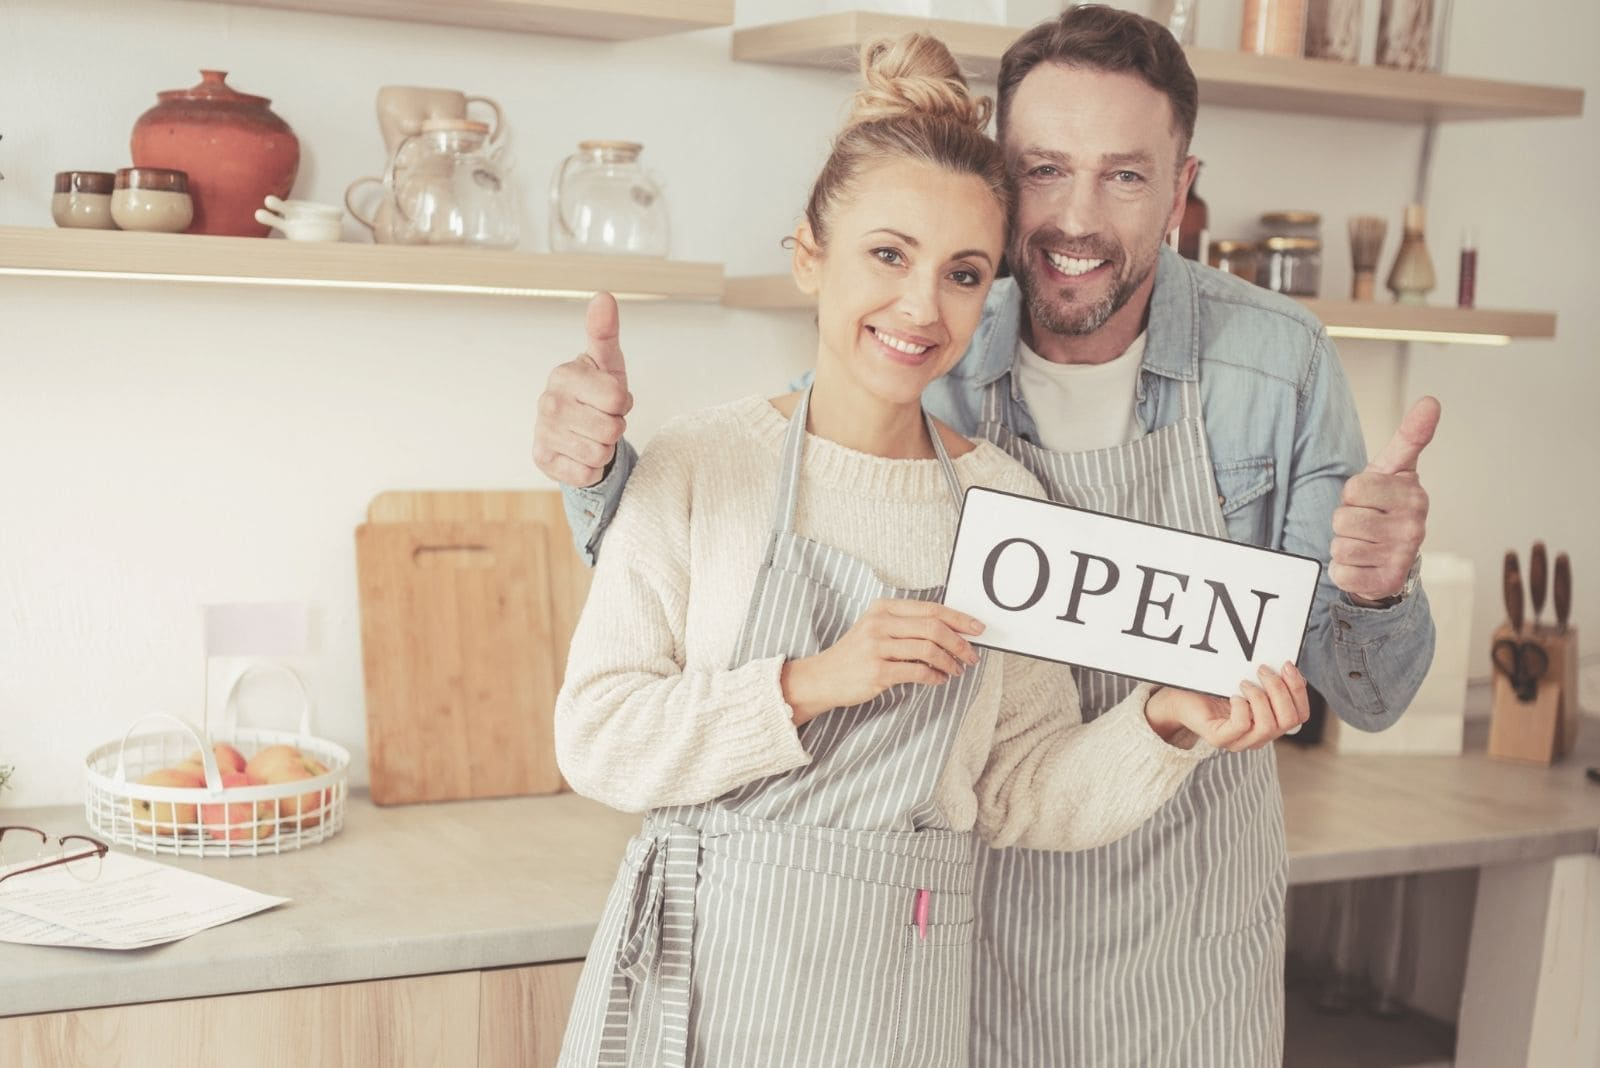 couple openning a business holding the word open wearing apron